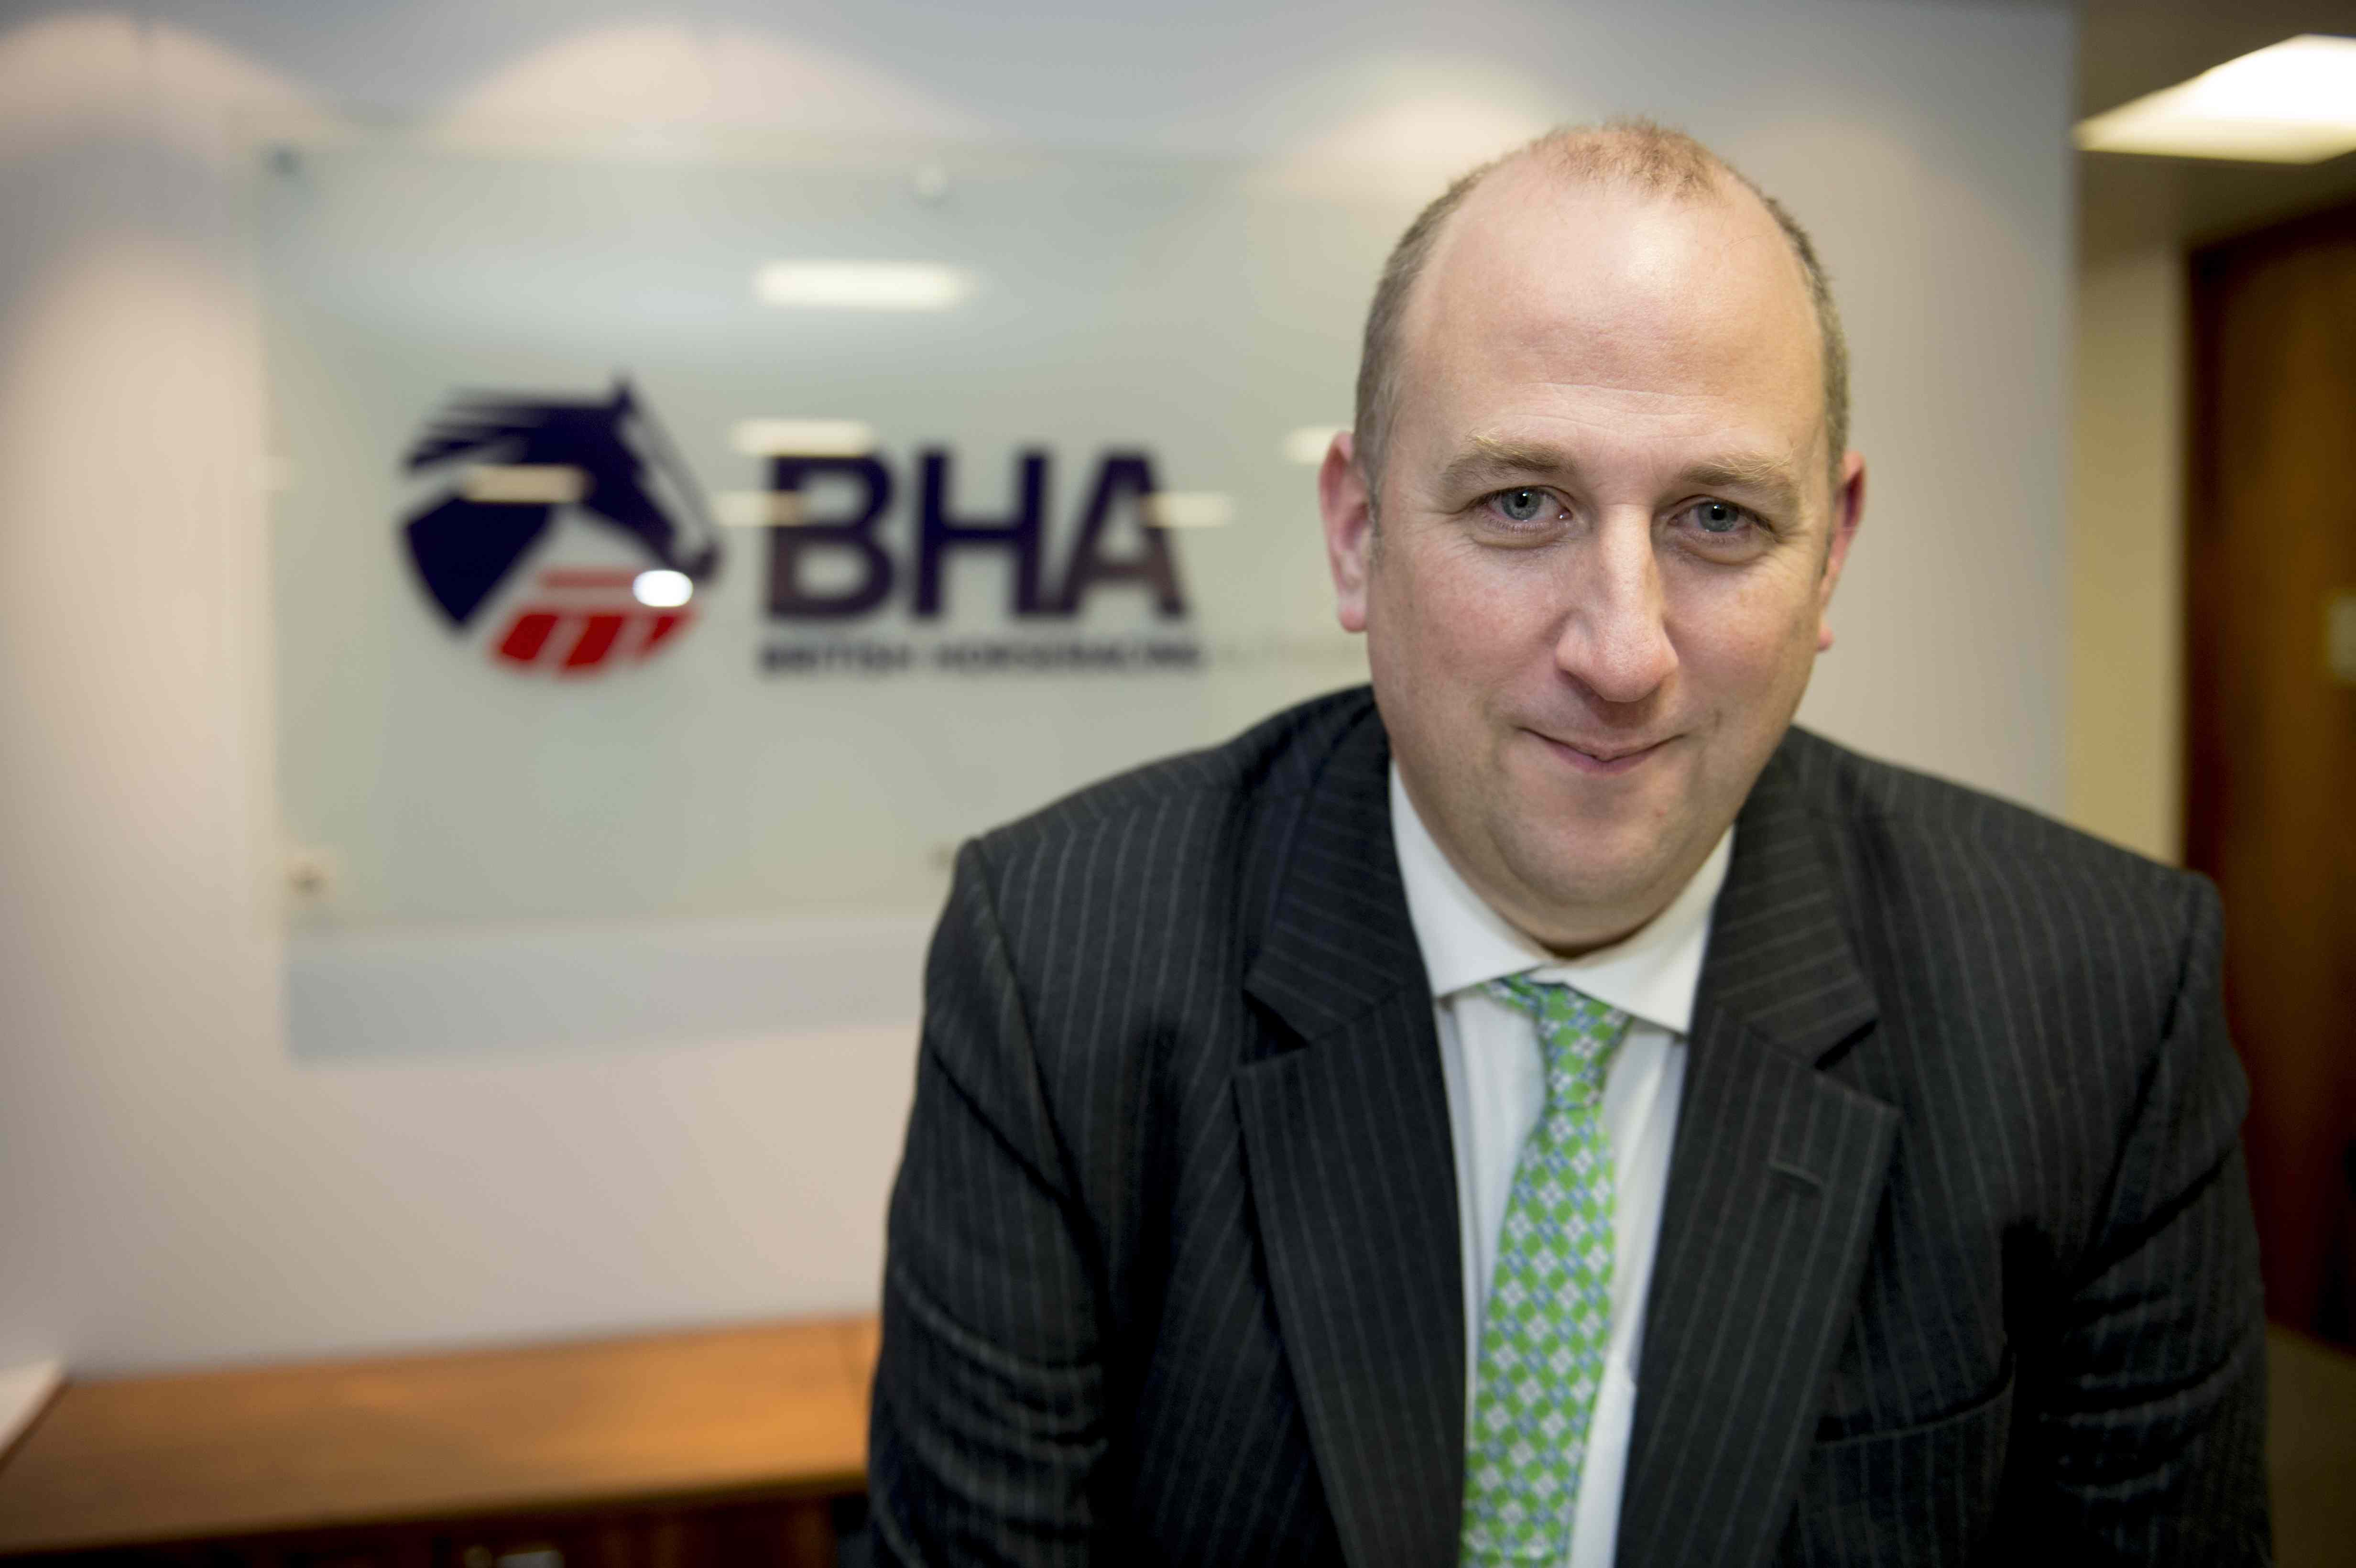 Nick Rust has made a big impact in his first year as Chief Executive of the BHA but as he explains, there is plenty of hard work ahead